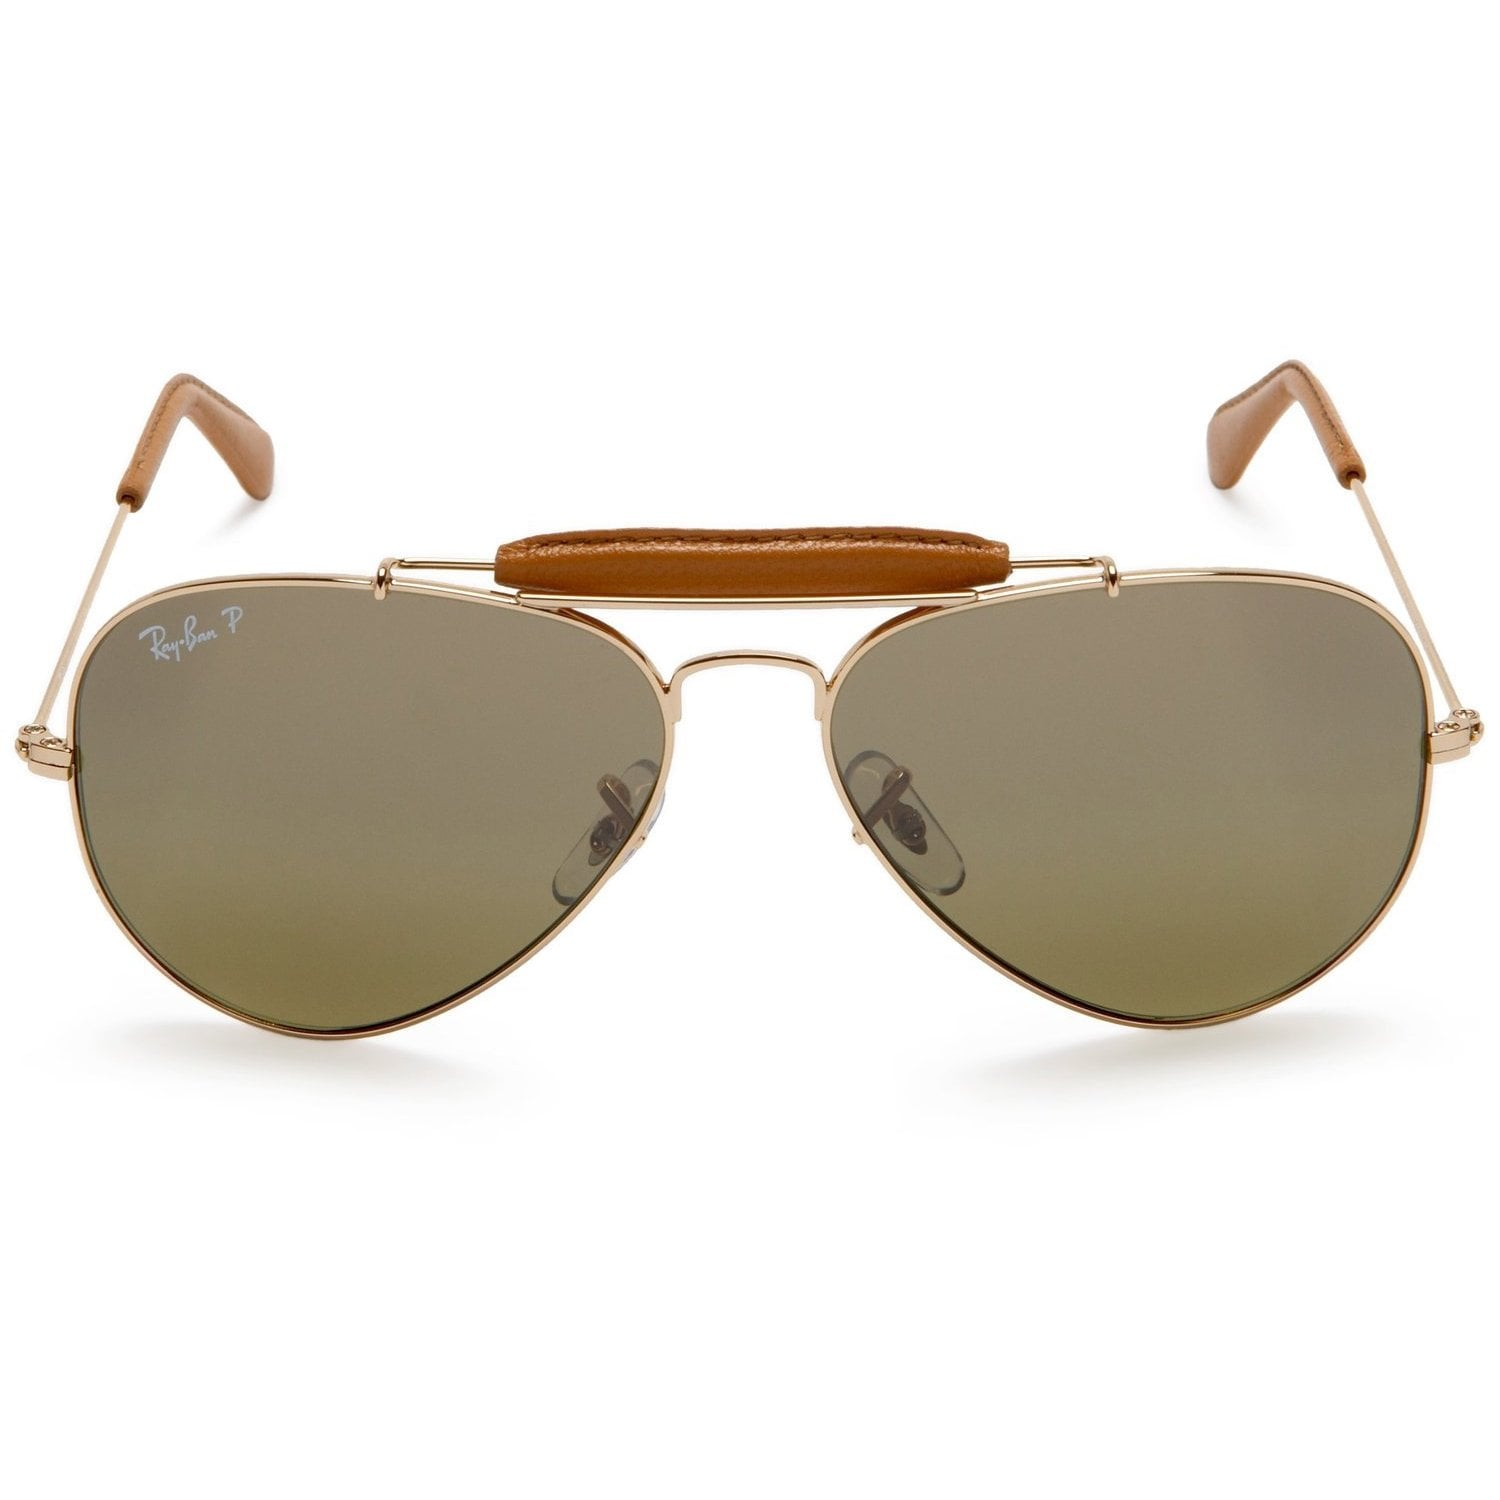 4594299334 Shop Ray-Ban Outdoorsman Craft RB3422Q 001 M9 Gold Frame Polarized Green  Lens Sunglasses - Free Shipping Today - Overstock - 14328090